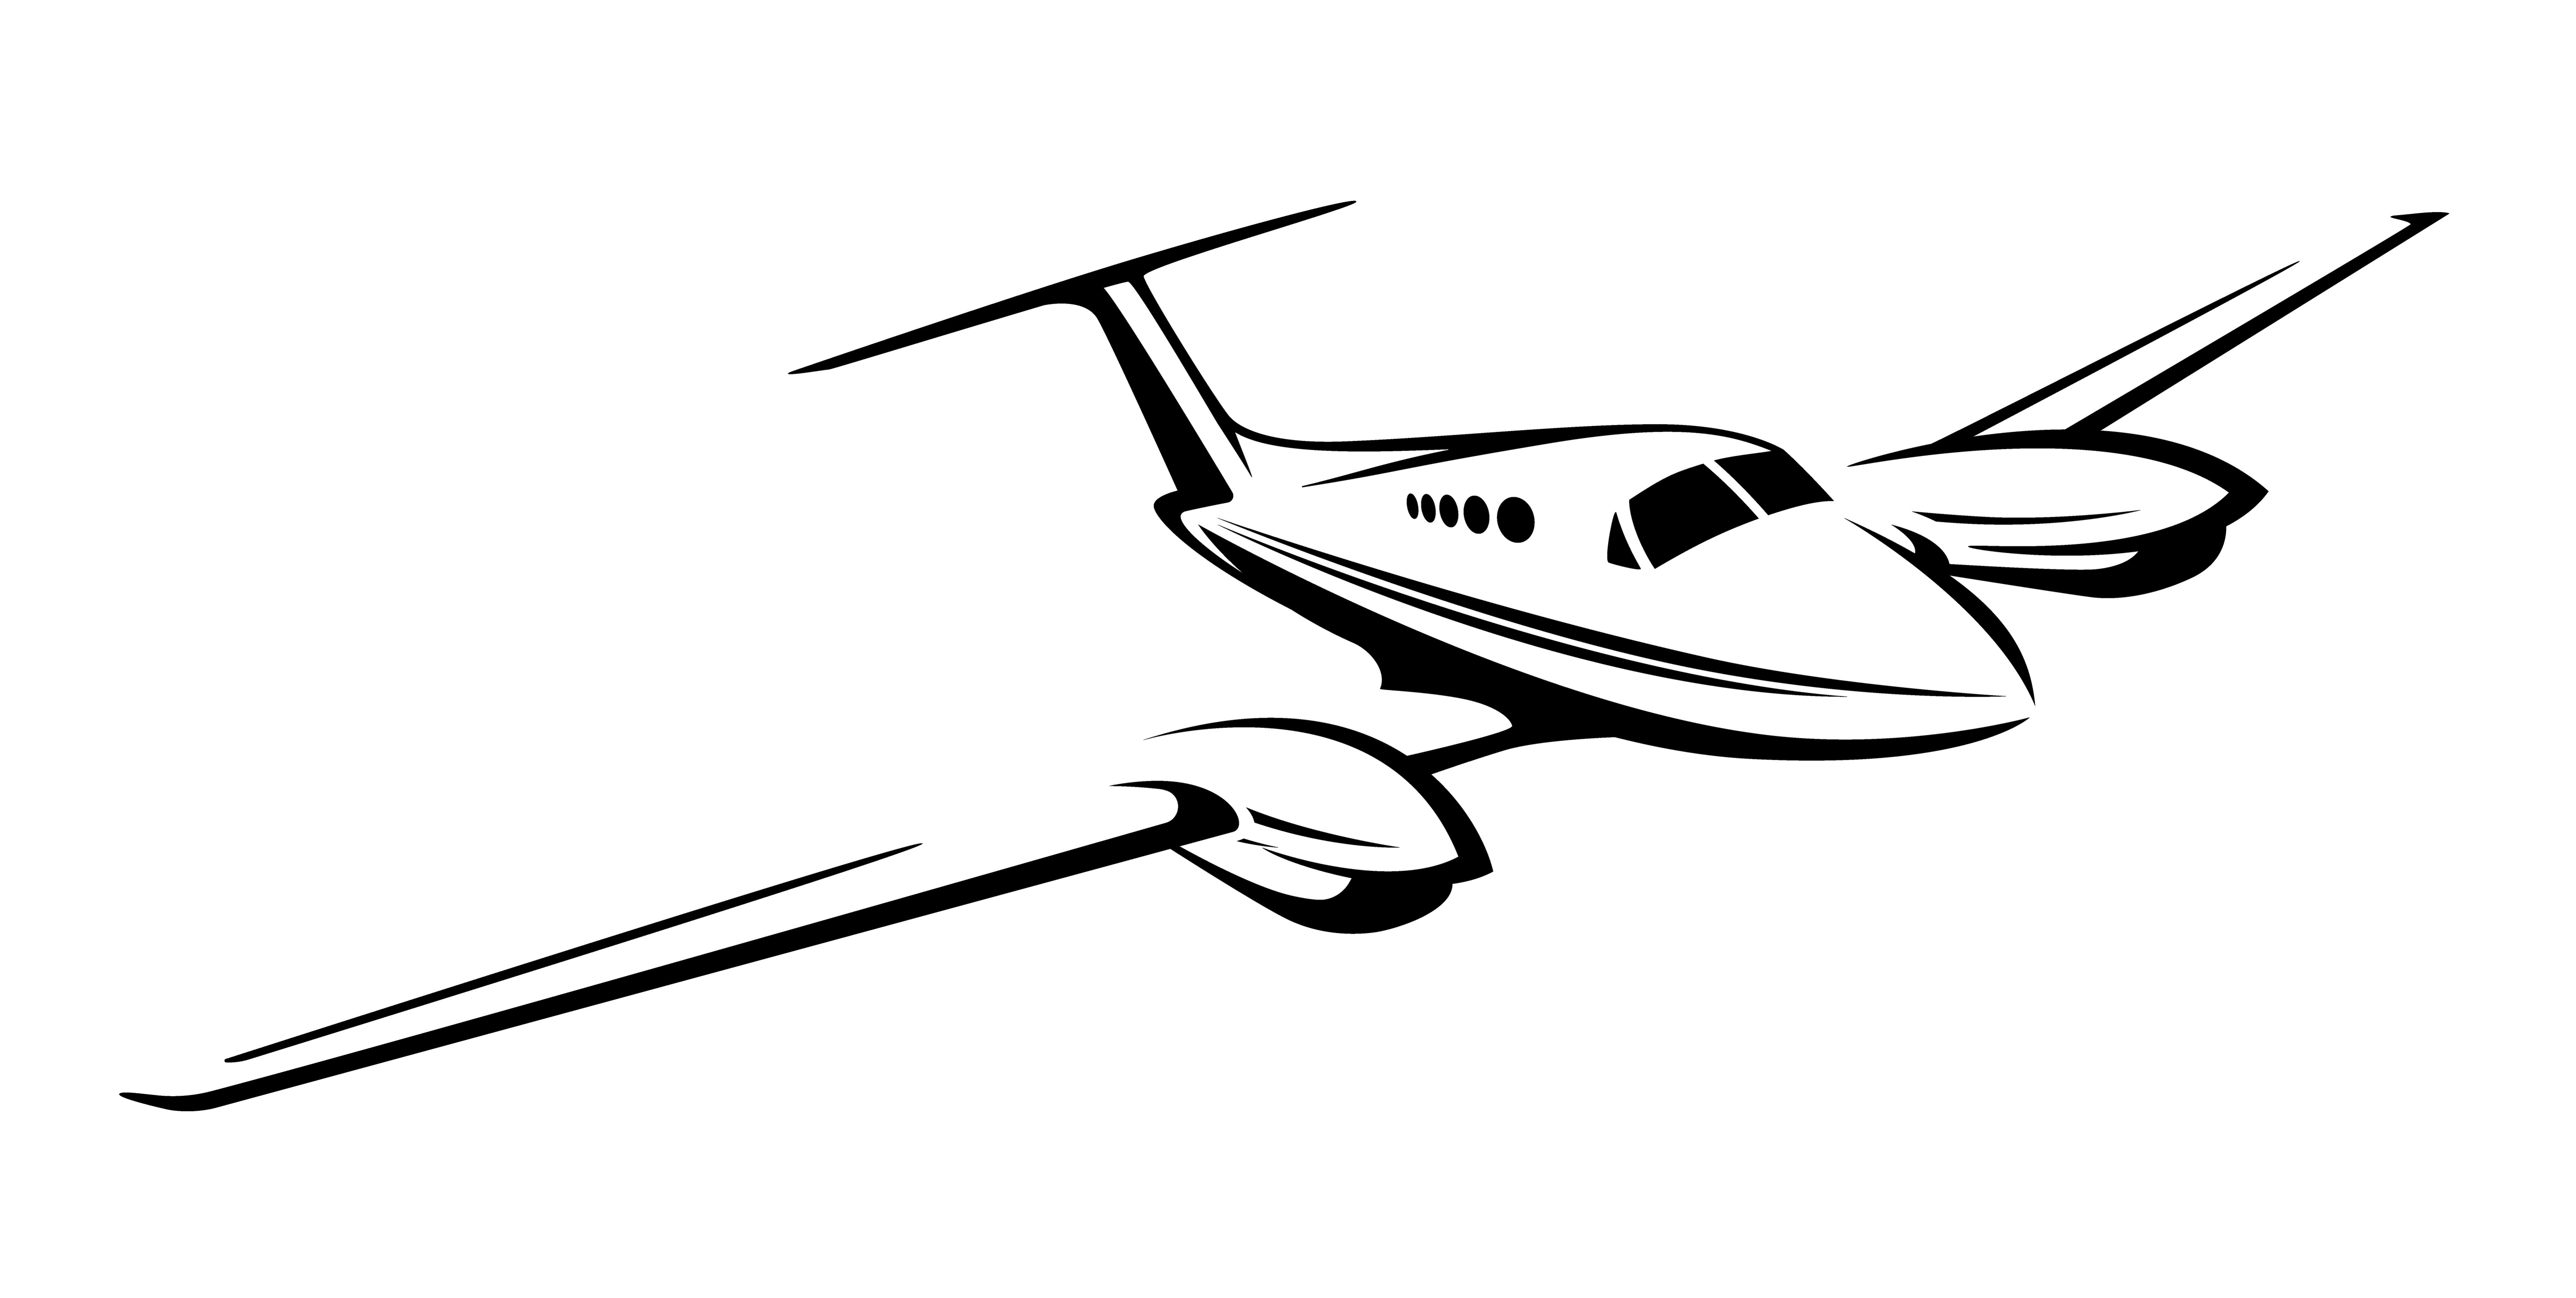 Small Private Twin Engine Airplane Vector Illustration